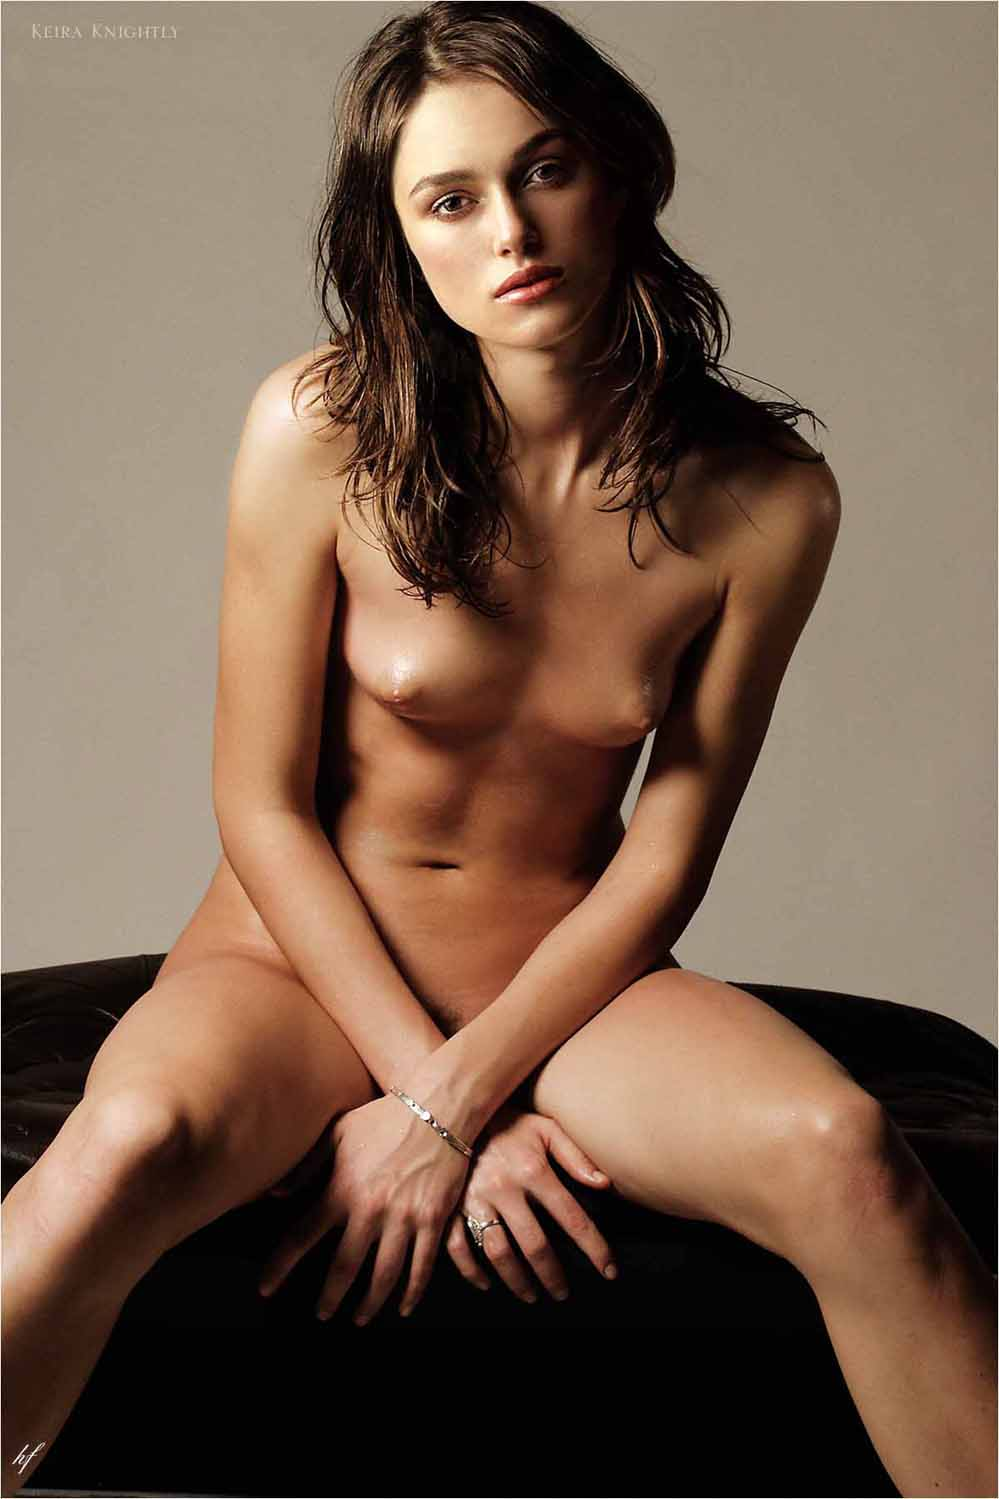 Kira knightle ass naked apologise, but